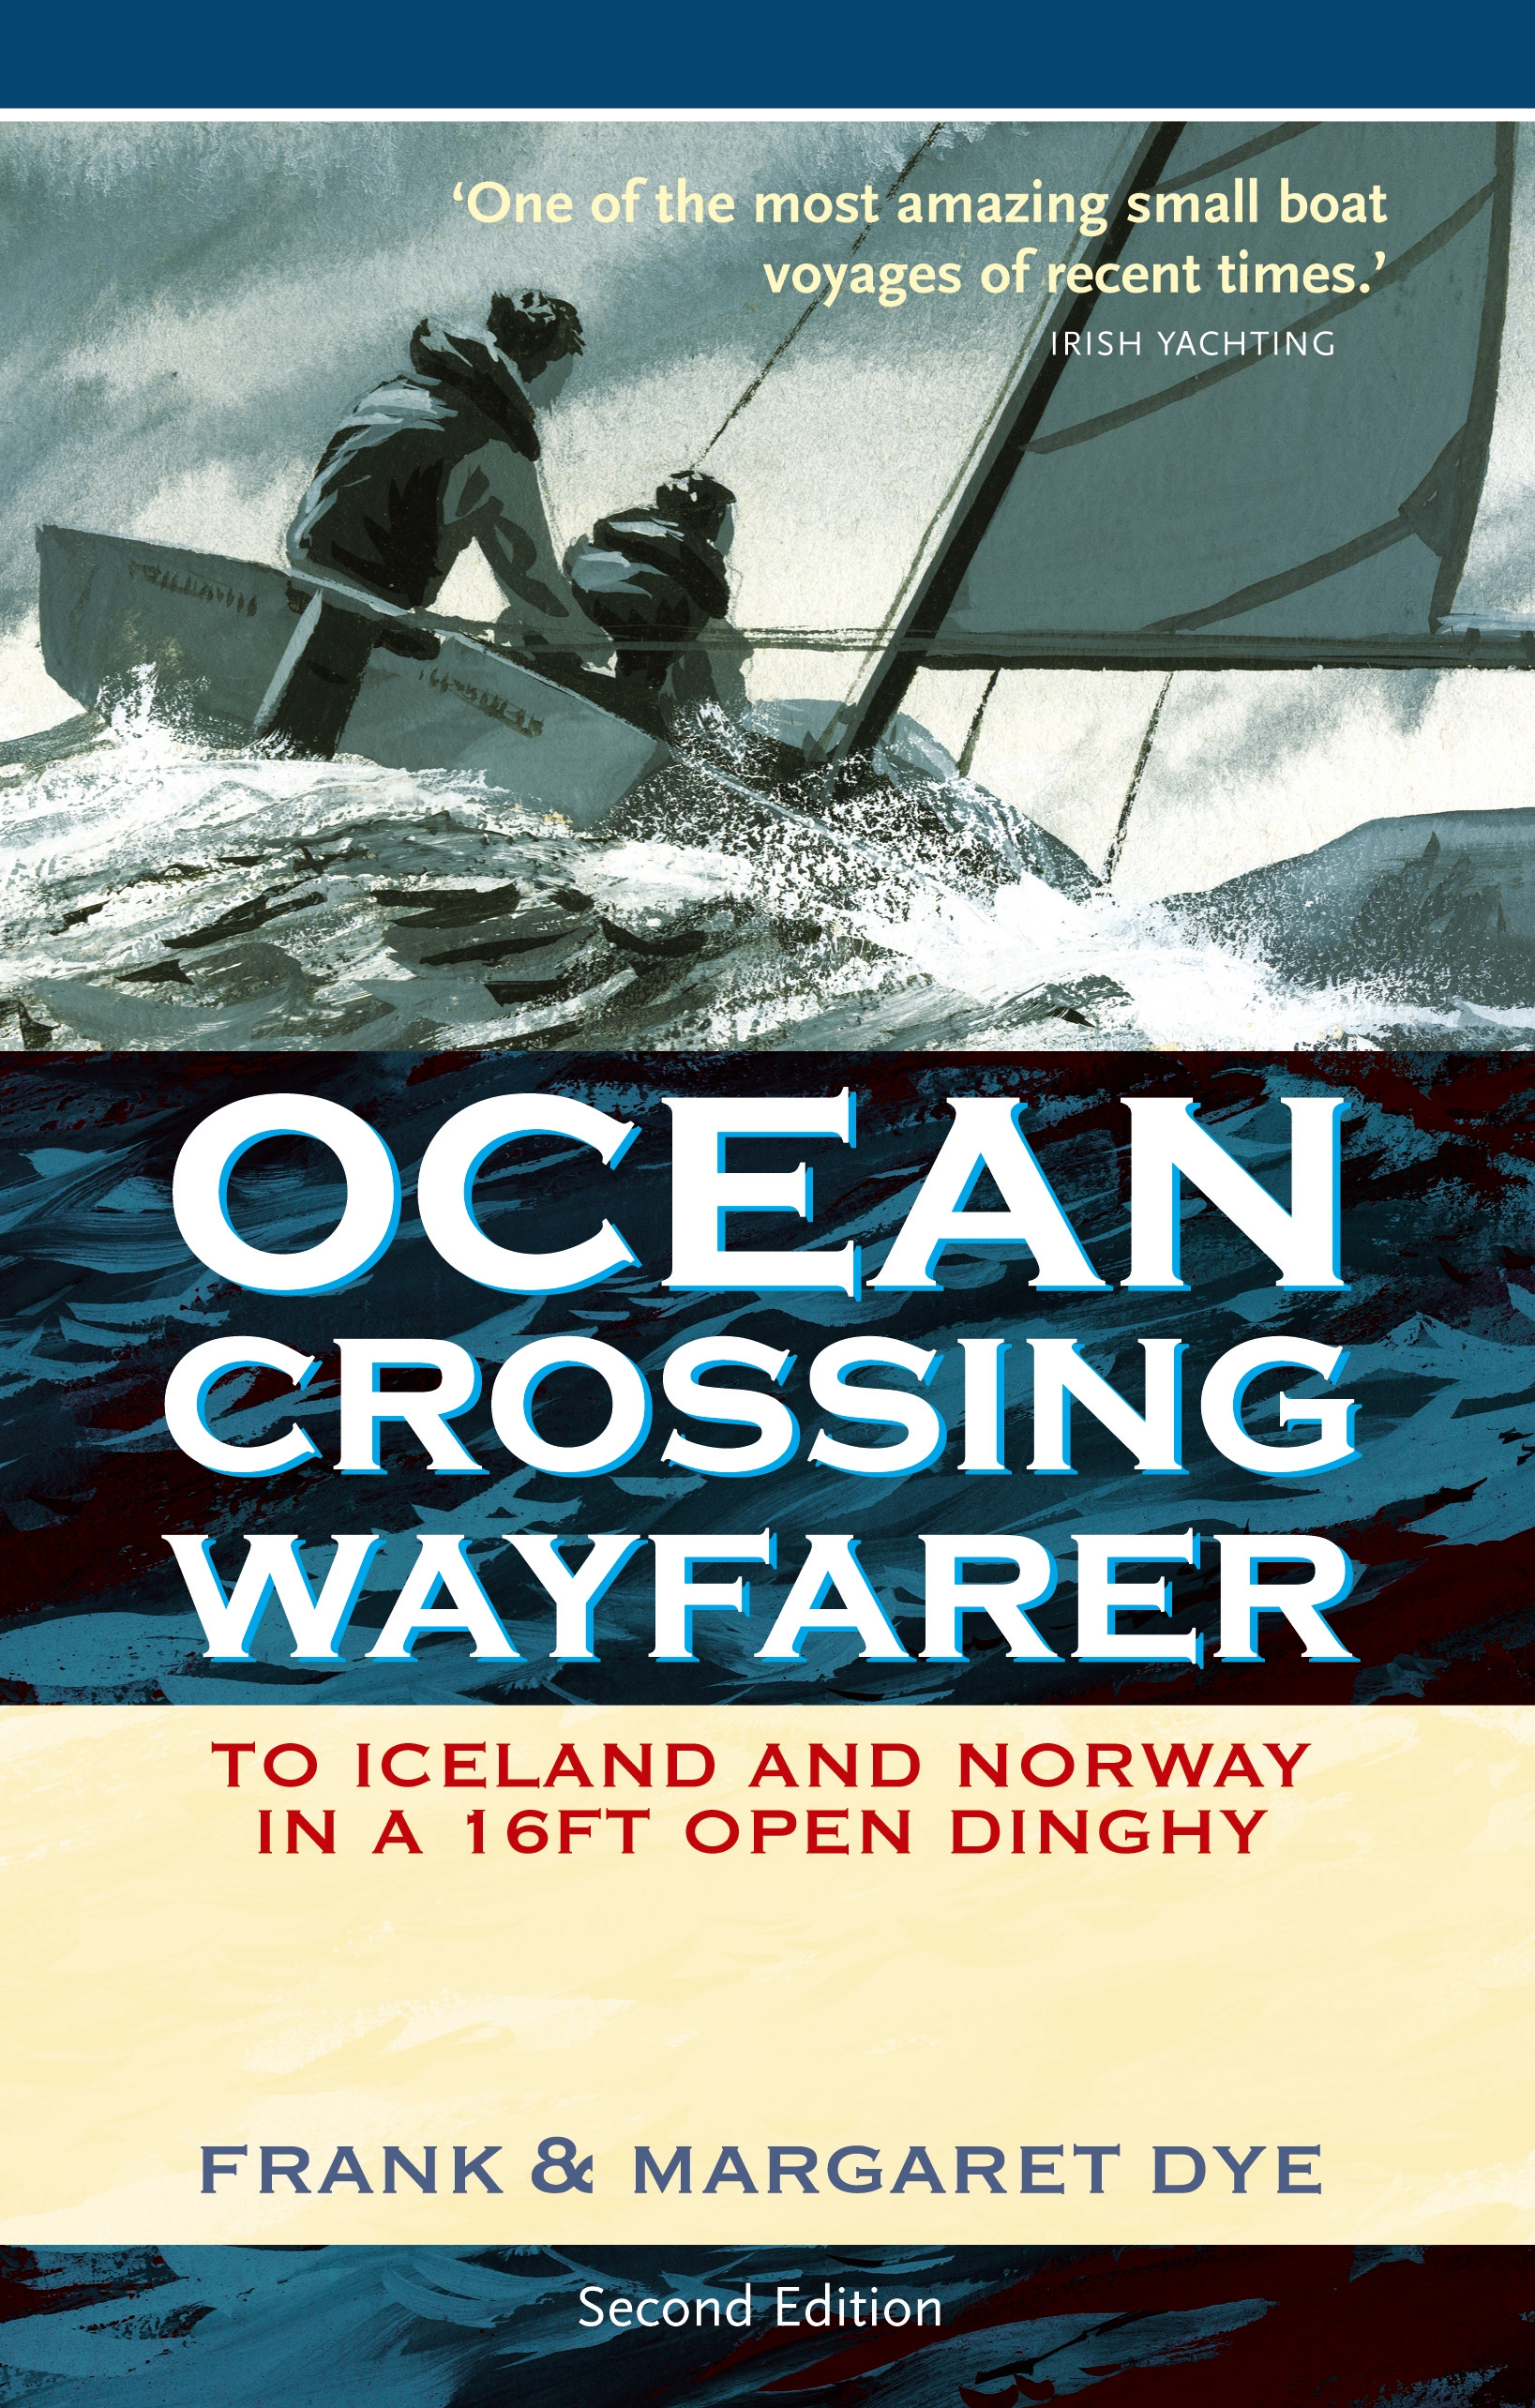 Ocean Crossing Wayfarer To Iceland and Norway in a 16ft Open Dinghy